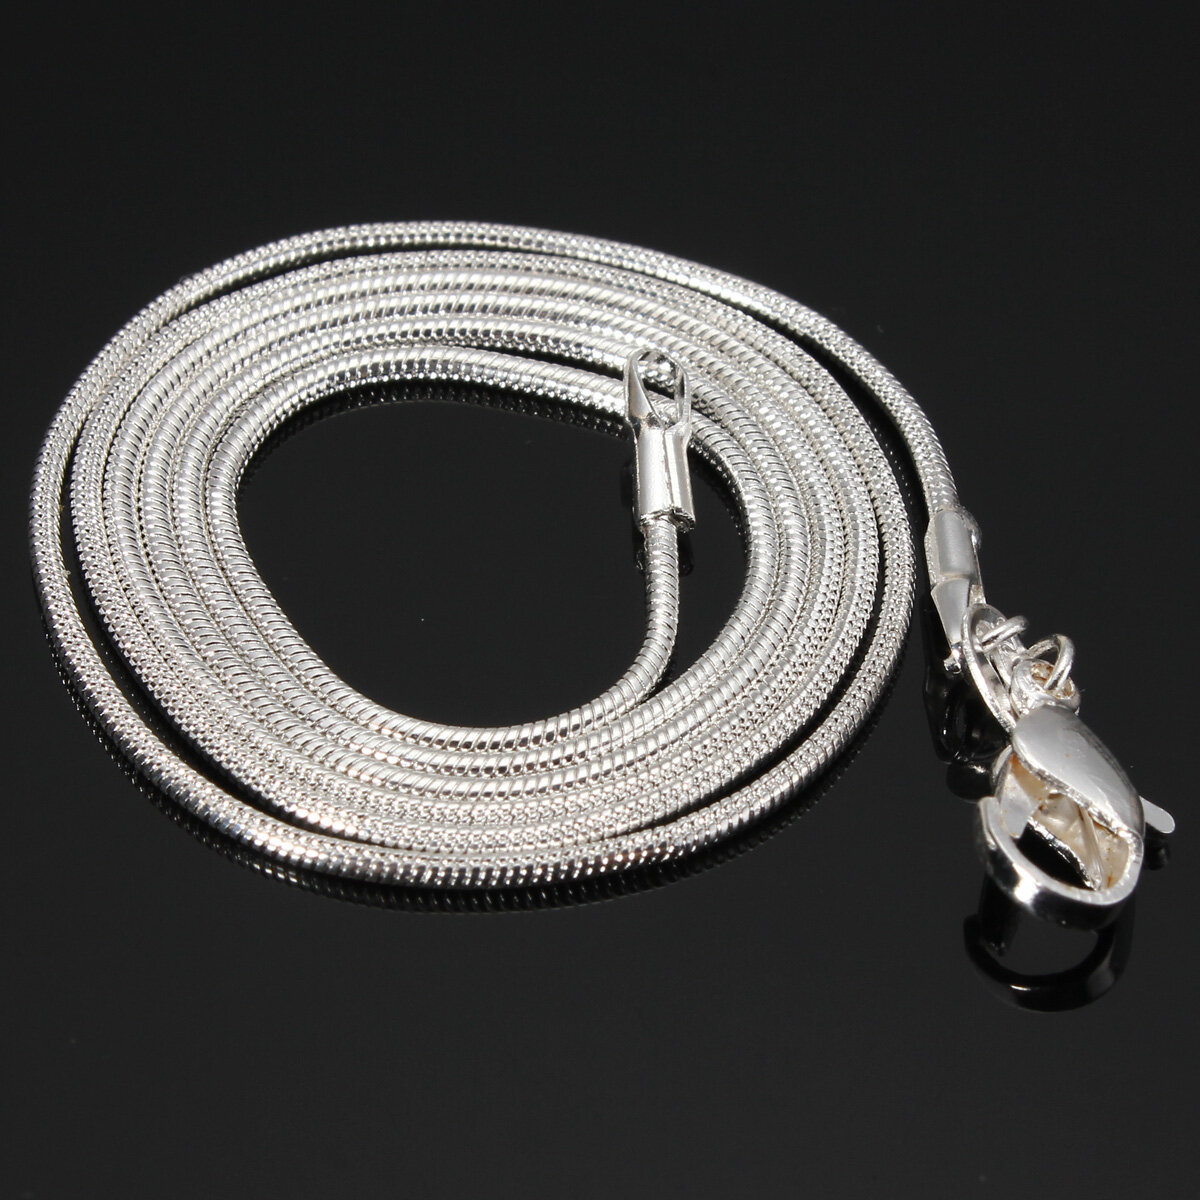 925 Silver Plated 1MM Snake Simple Chain Necklace 16 18 20 22 24 inch - 1